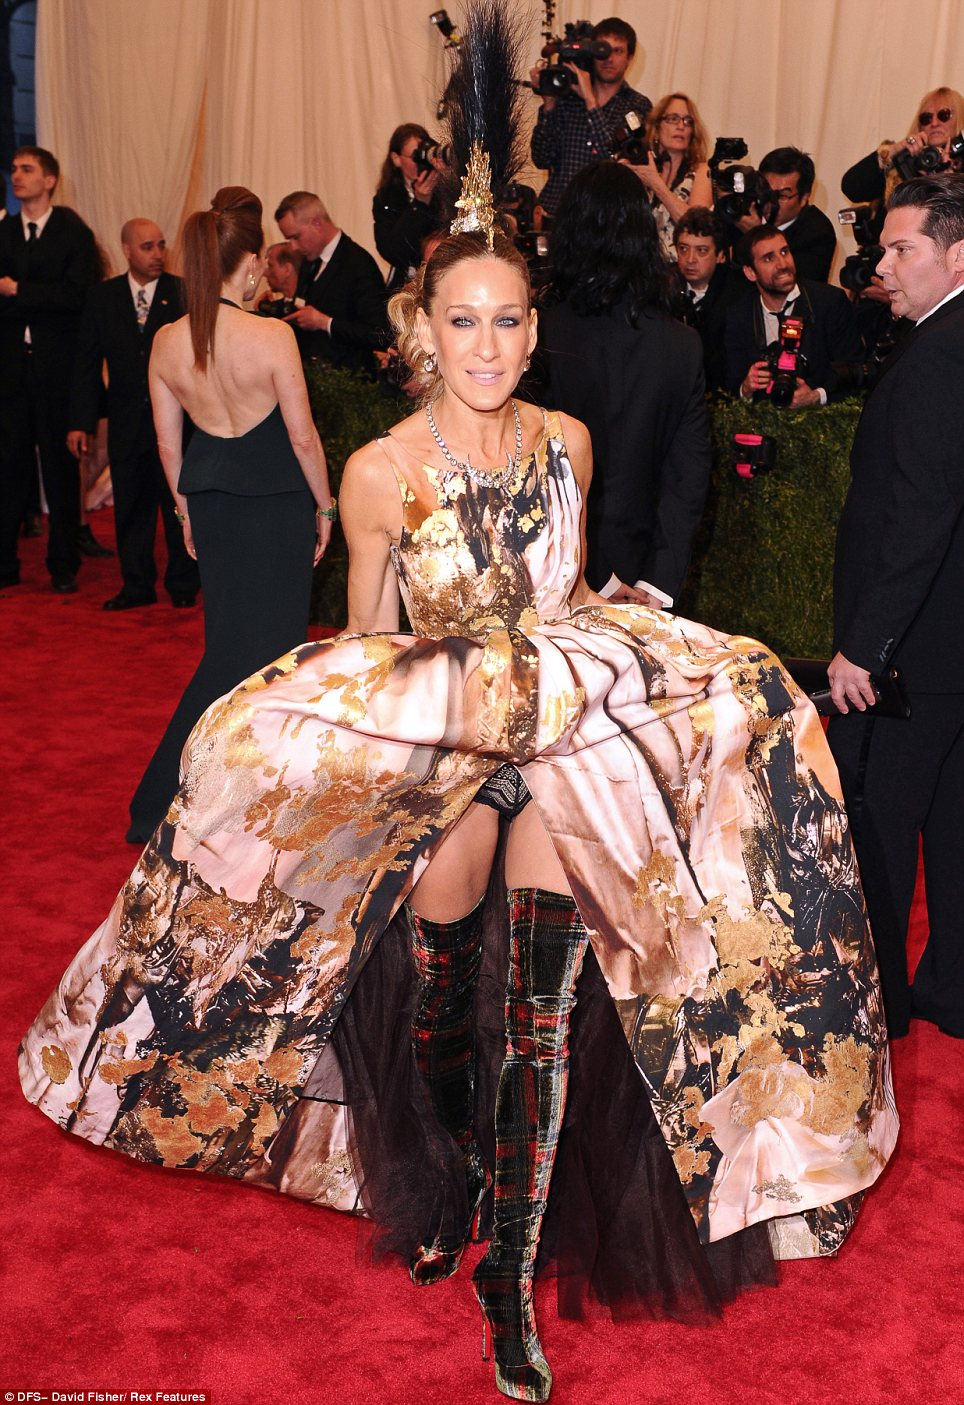 Going all out: Sarah Jessica Parker, in a Giles Deacon dress, Philip Treacy headpiece and Louis Vuitton boots, put all the other guests to shame with her amazing and elaborate outfit